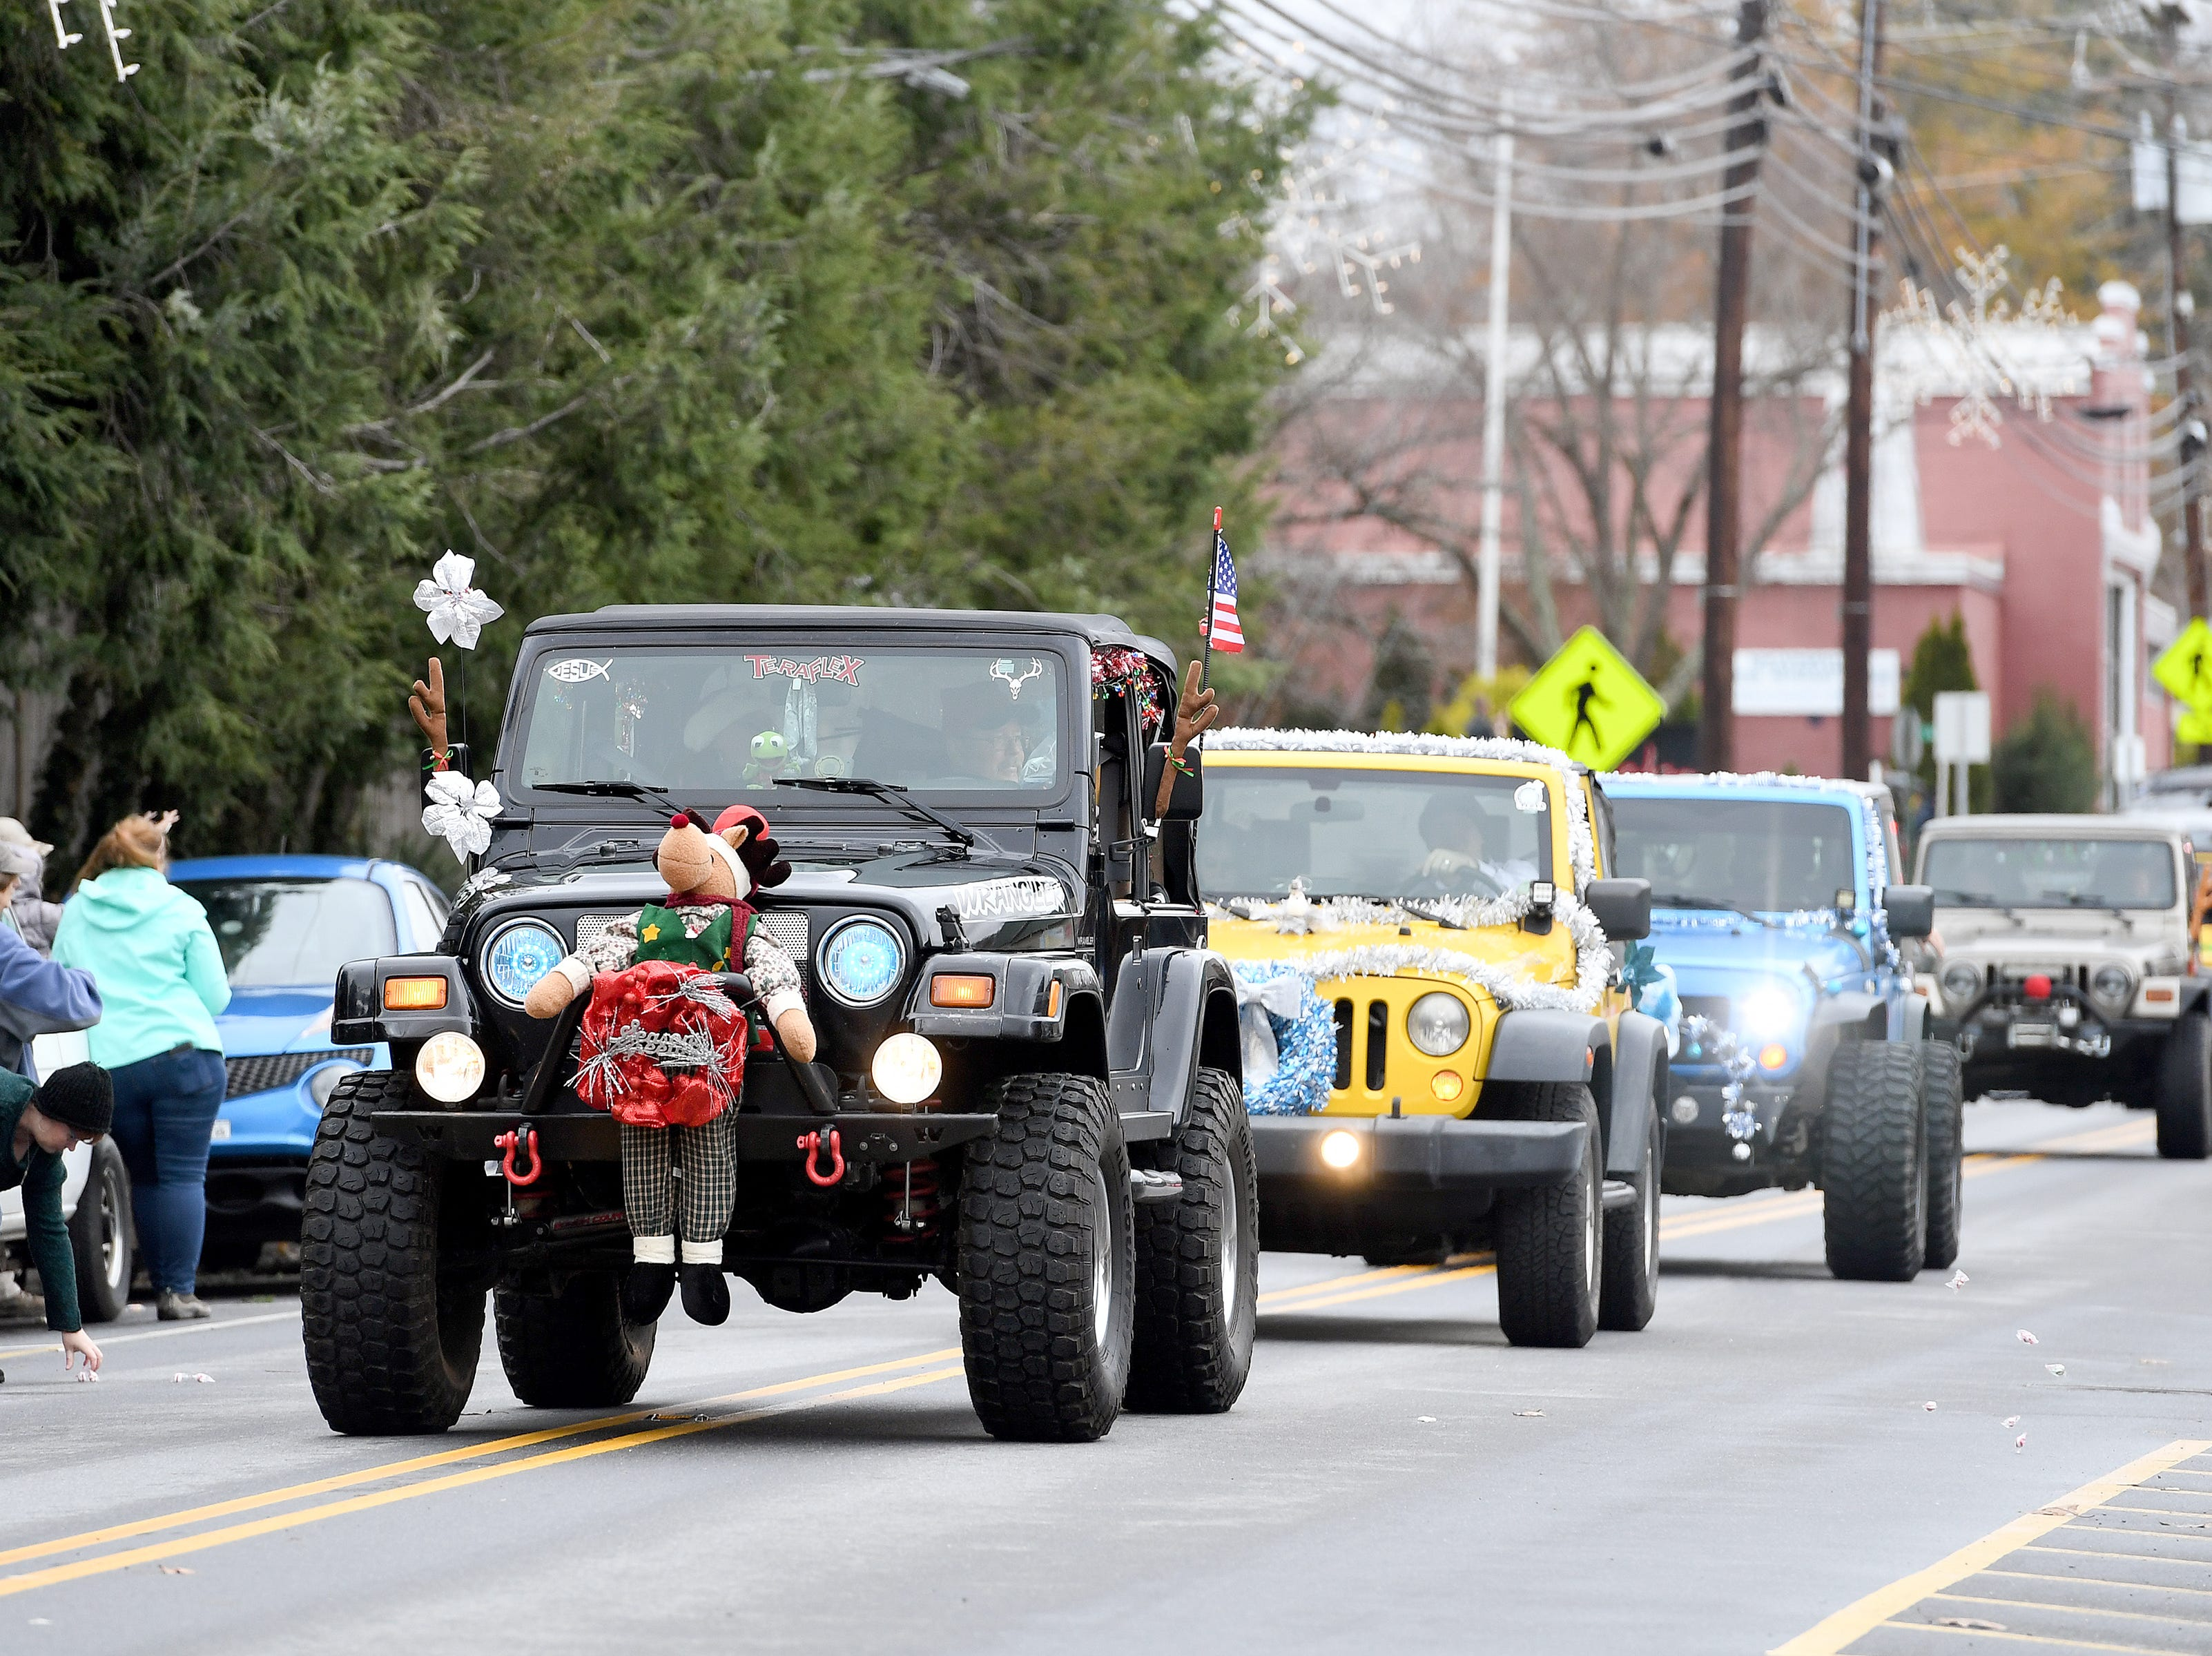 The Jeep Crew makes their way down Main Street in decorated Jeeps as they ride in the Weaverville Christmas Parade on Dec. 1, 2018.